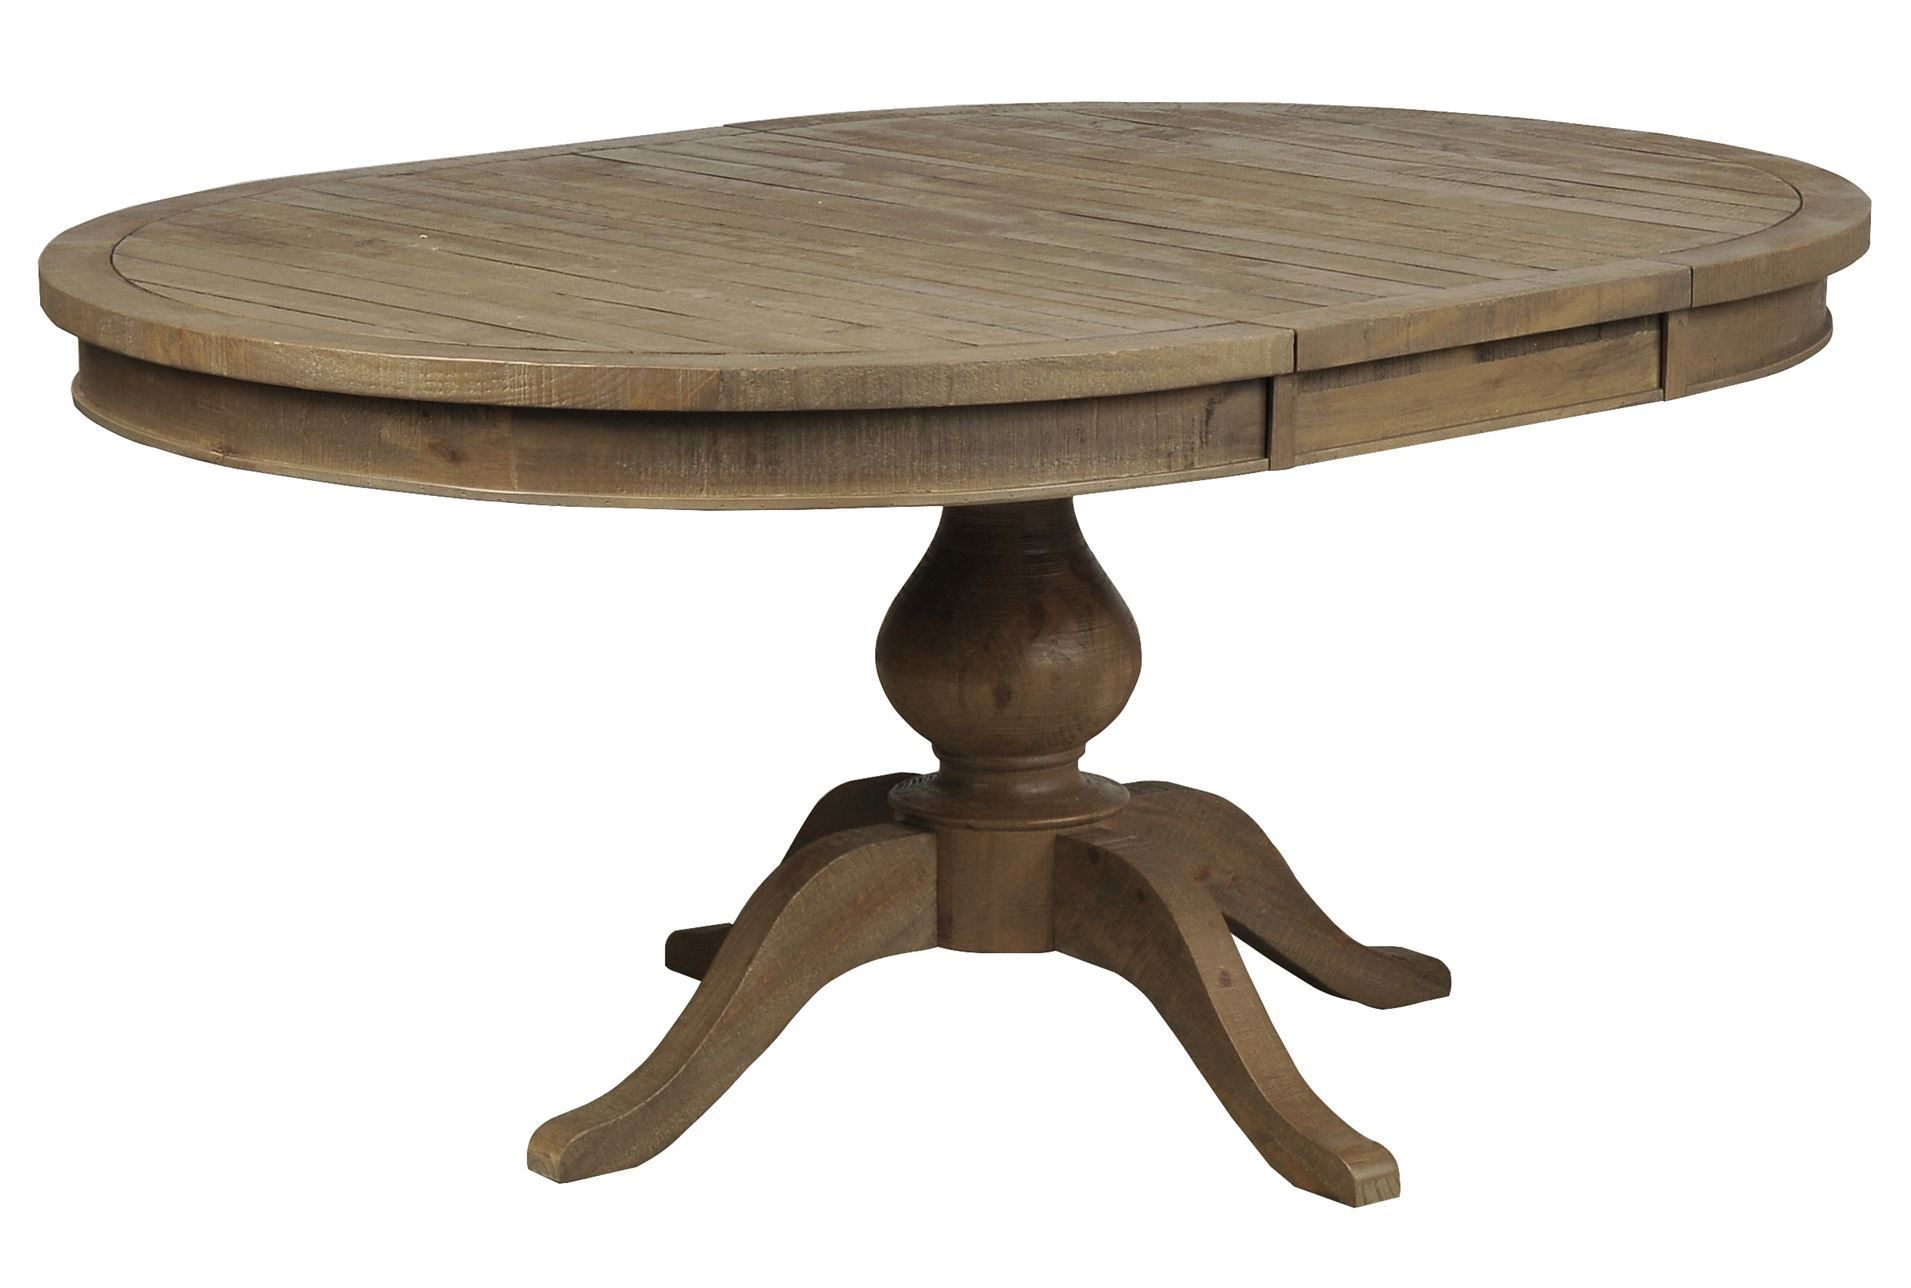 Beckett Round Dining Table 475 48 Diam Closed 68 Open W Extendable Middle Breakfast Nook Table Dining Table Dining Table With Leaf Living Table